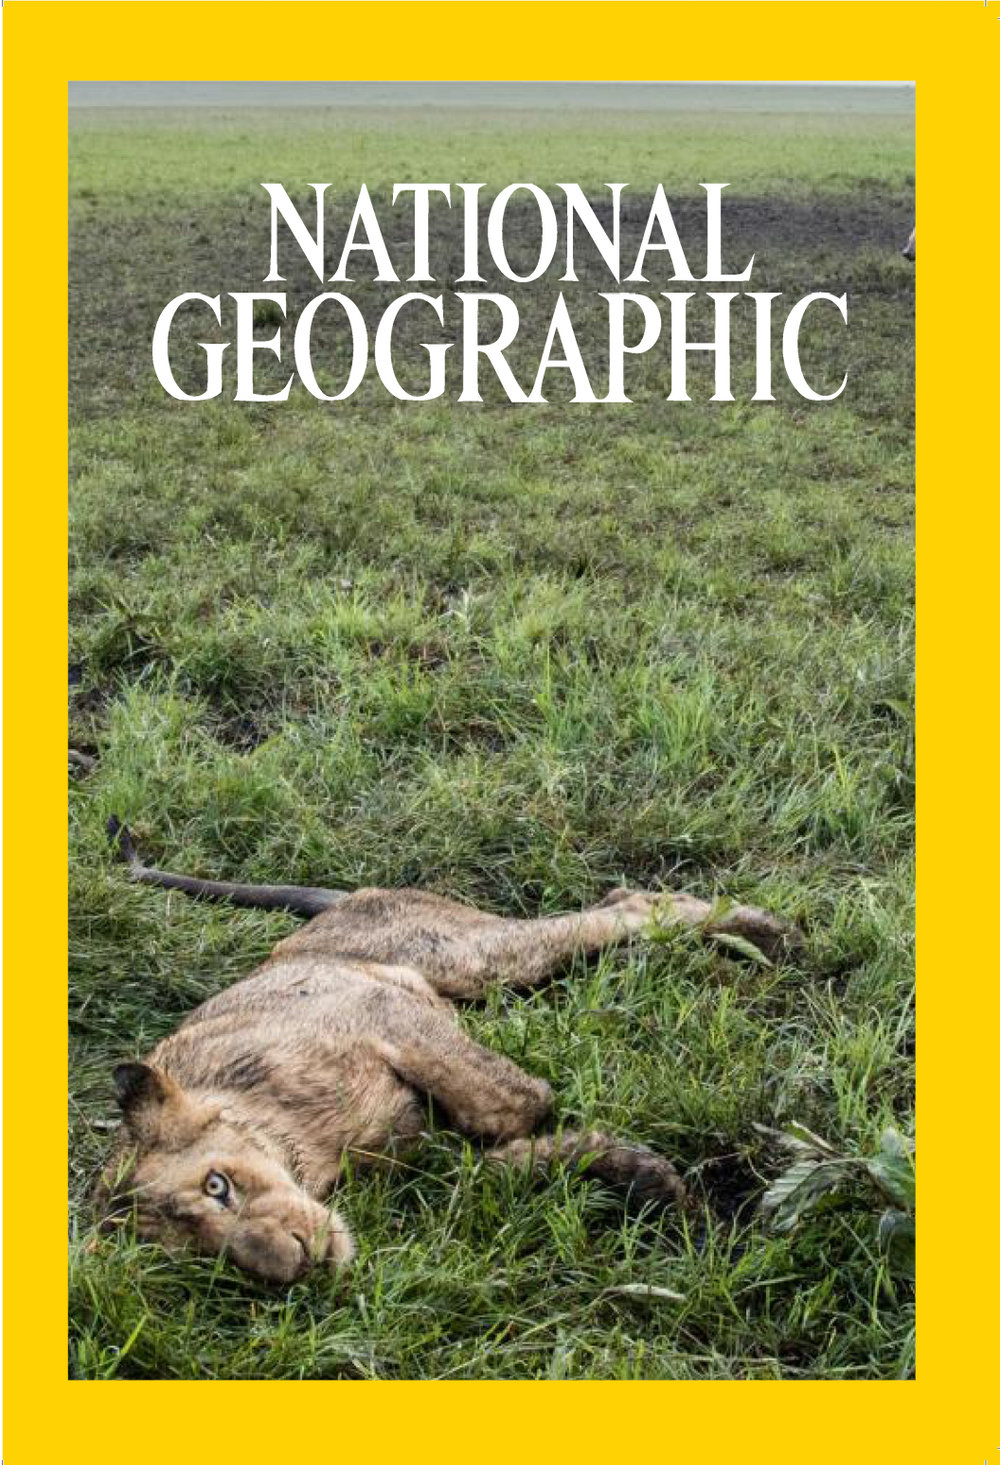 Nat-Geo_Cover_Poisoning_WIldlife.jpg